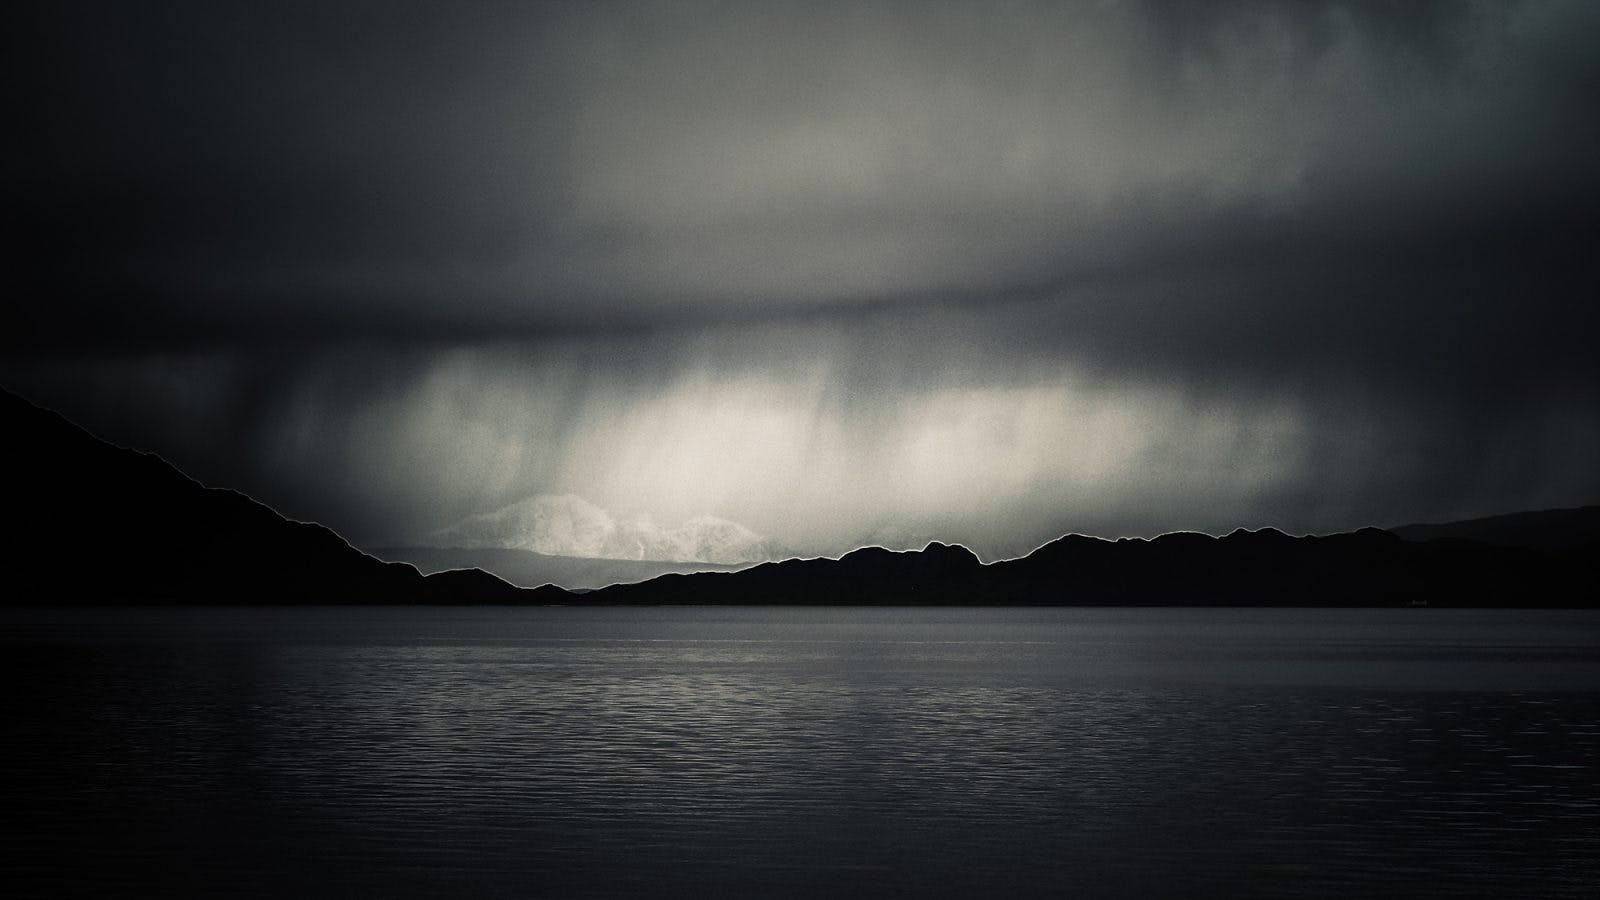 Storm over a Scottish Loch. On bikerafting adventures in Scotland, you never know what kind of weather you'll find.